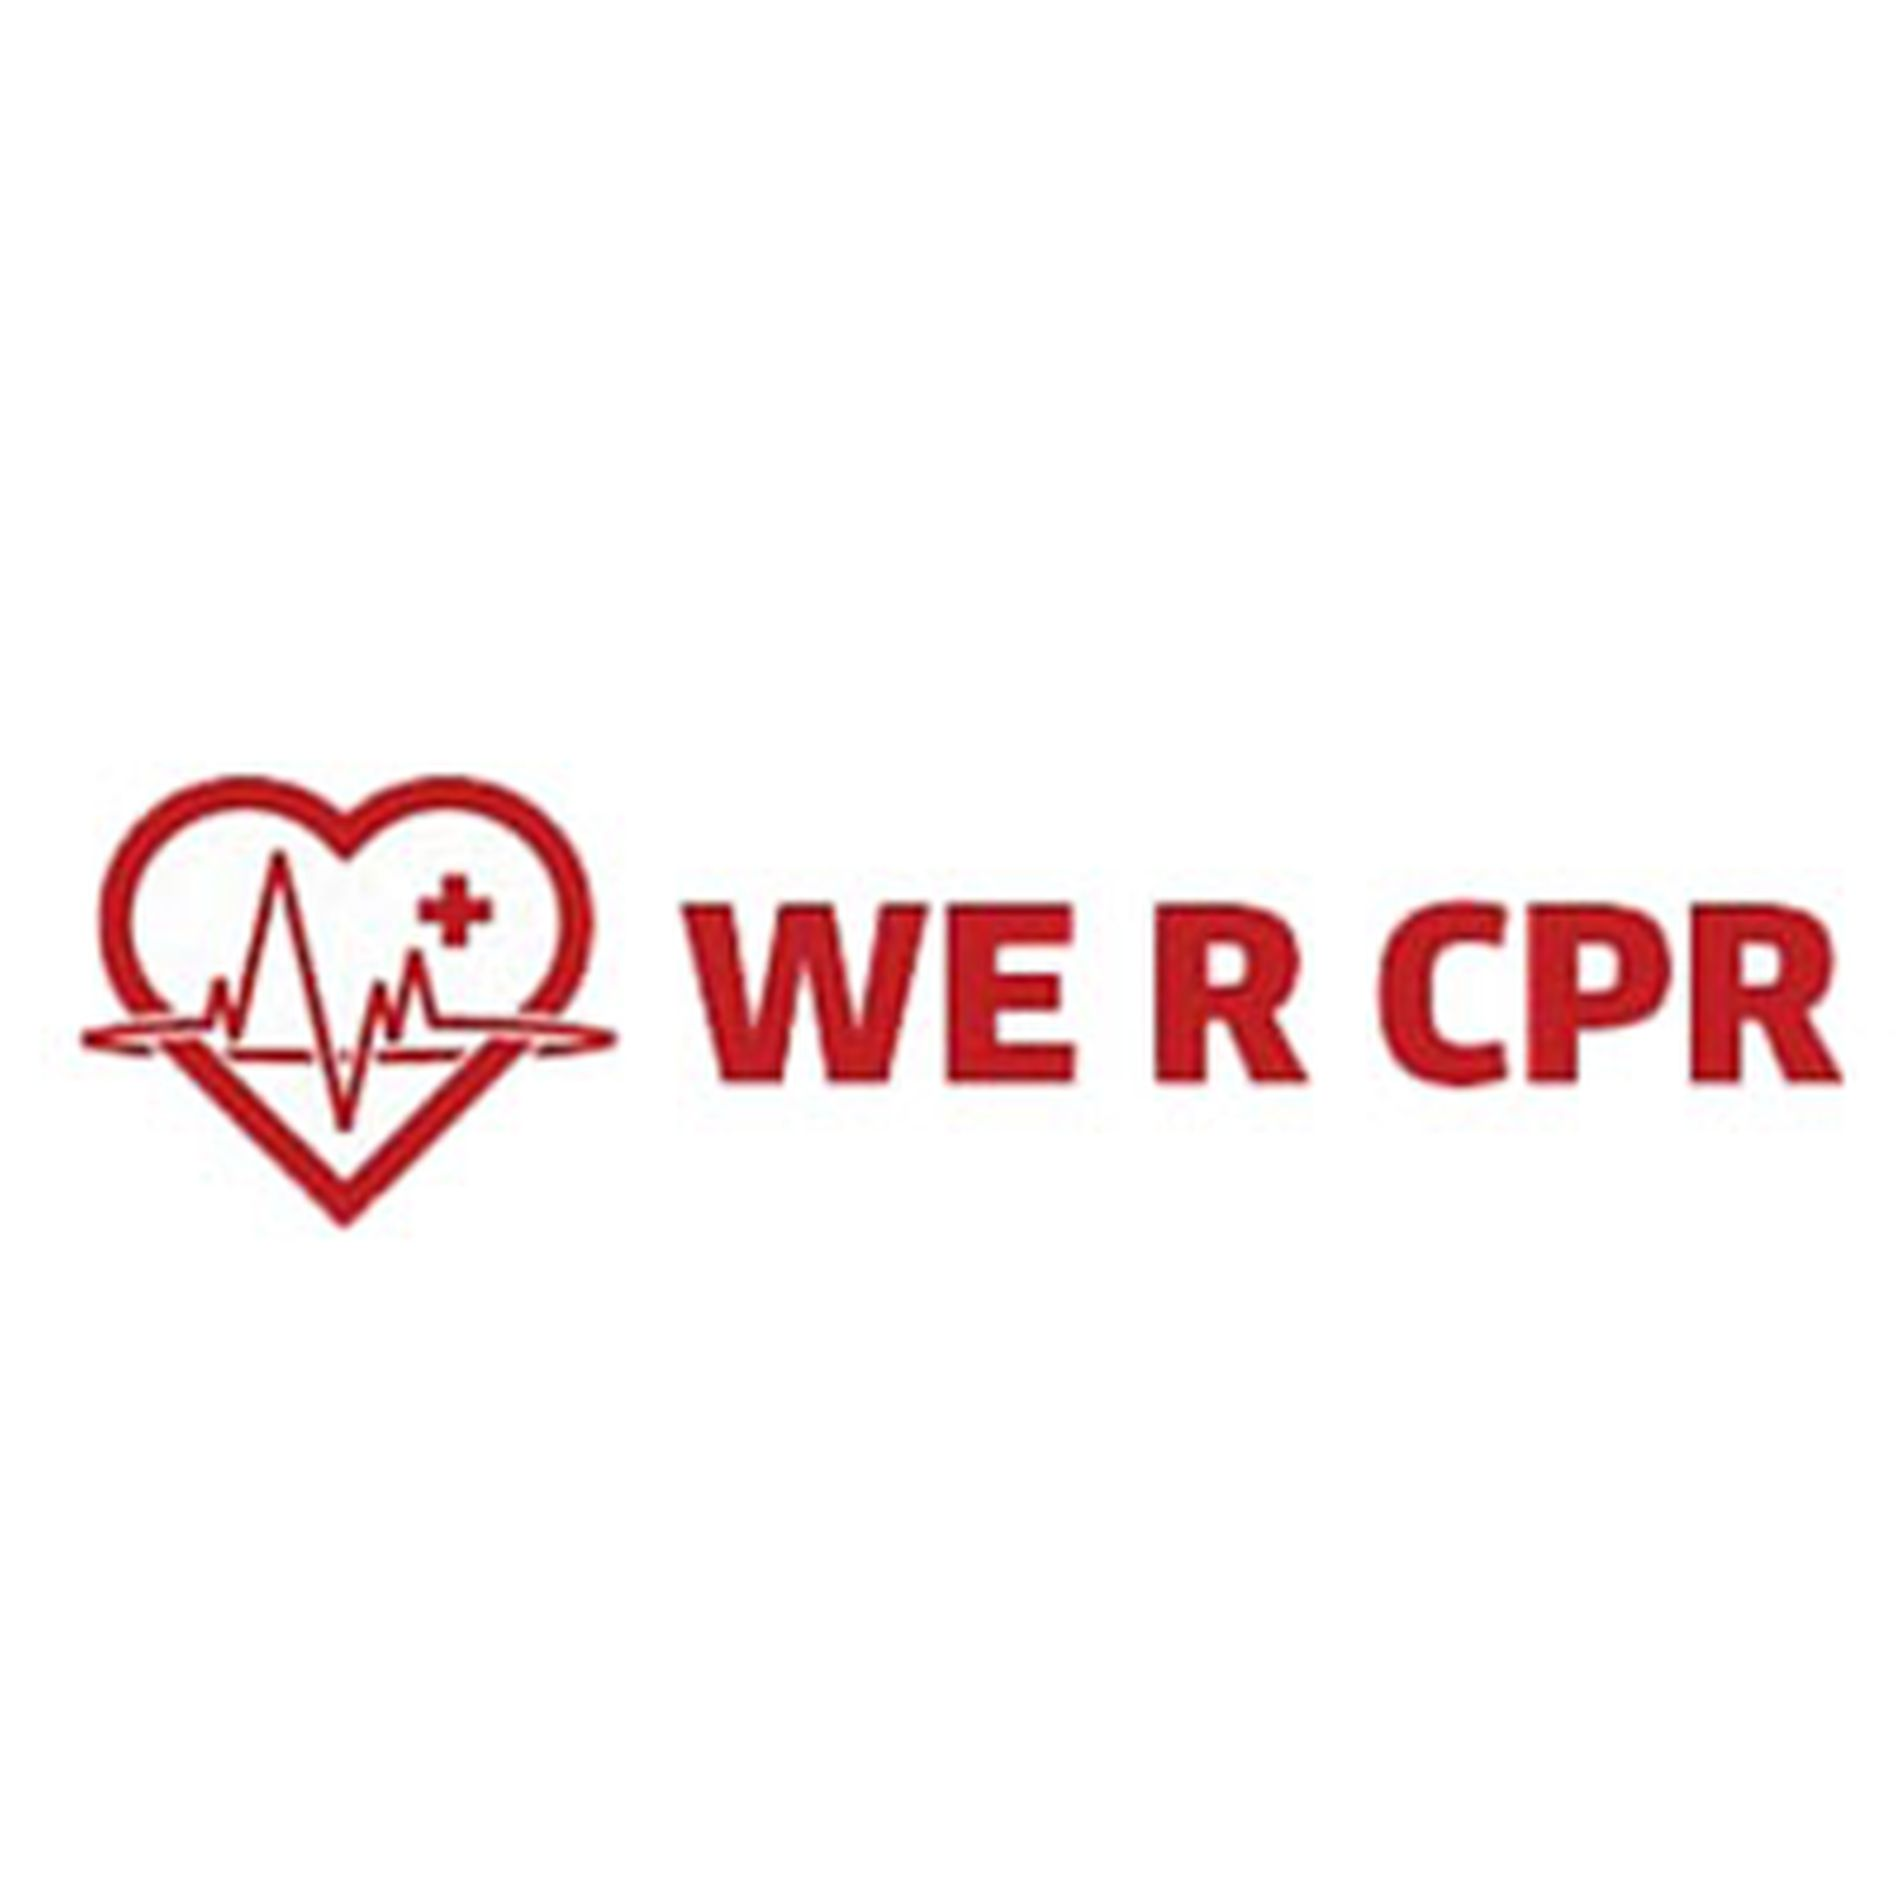 We r cpr 5959 shallowford rd chattanooga tn 37421 yp logo servicesproducts bls healthcare provider cpr aed first aid baby sitting class pet cpr brands aha payment method all major credit cards 1betcityfo Images